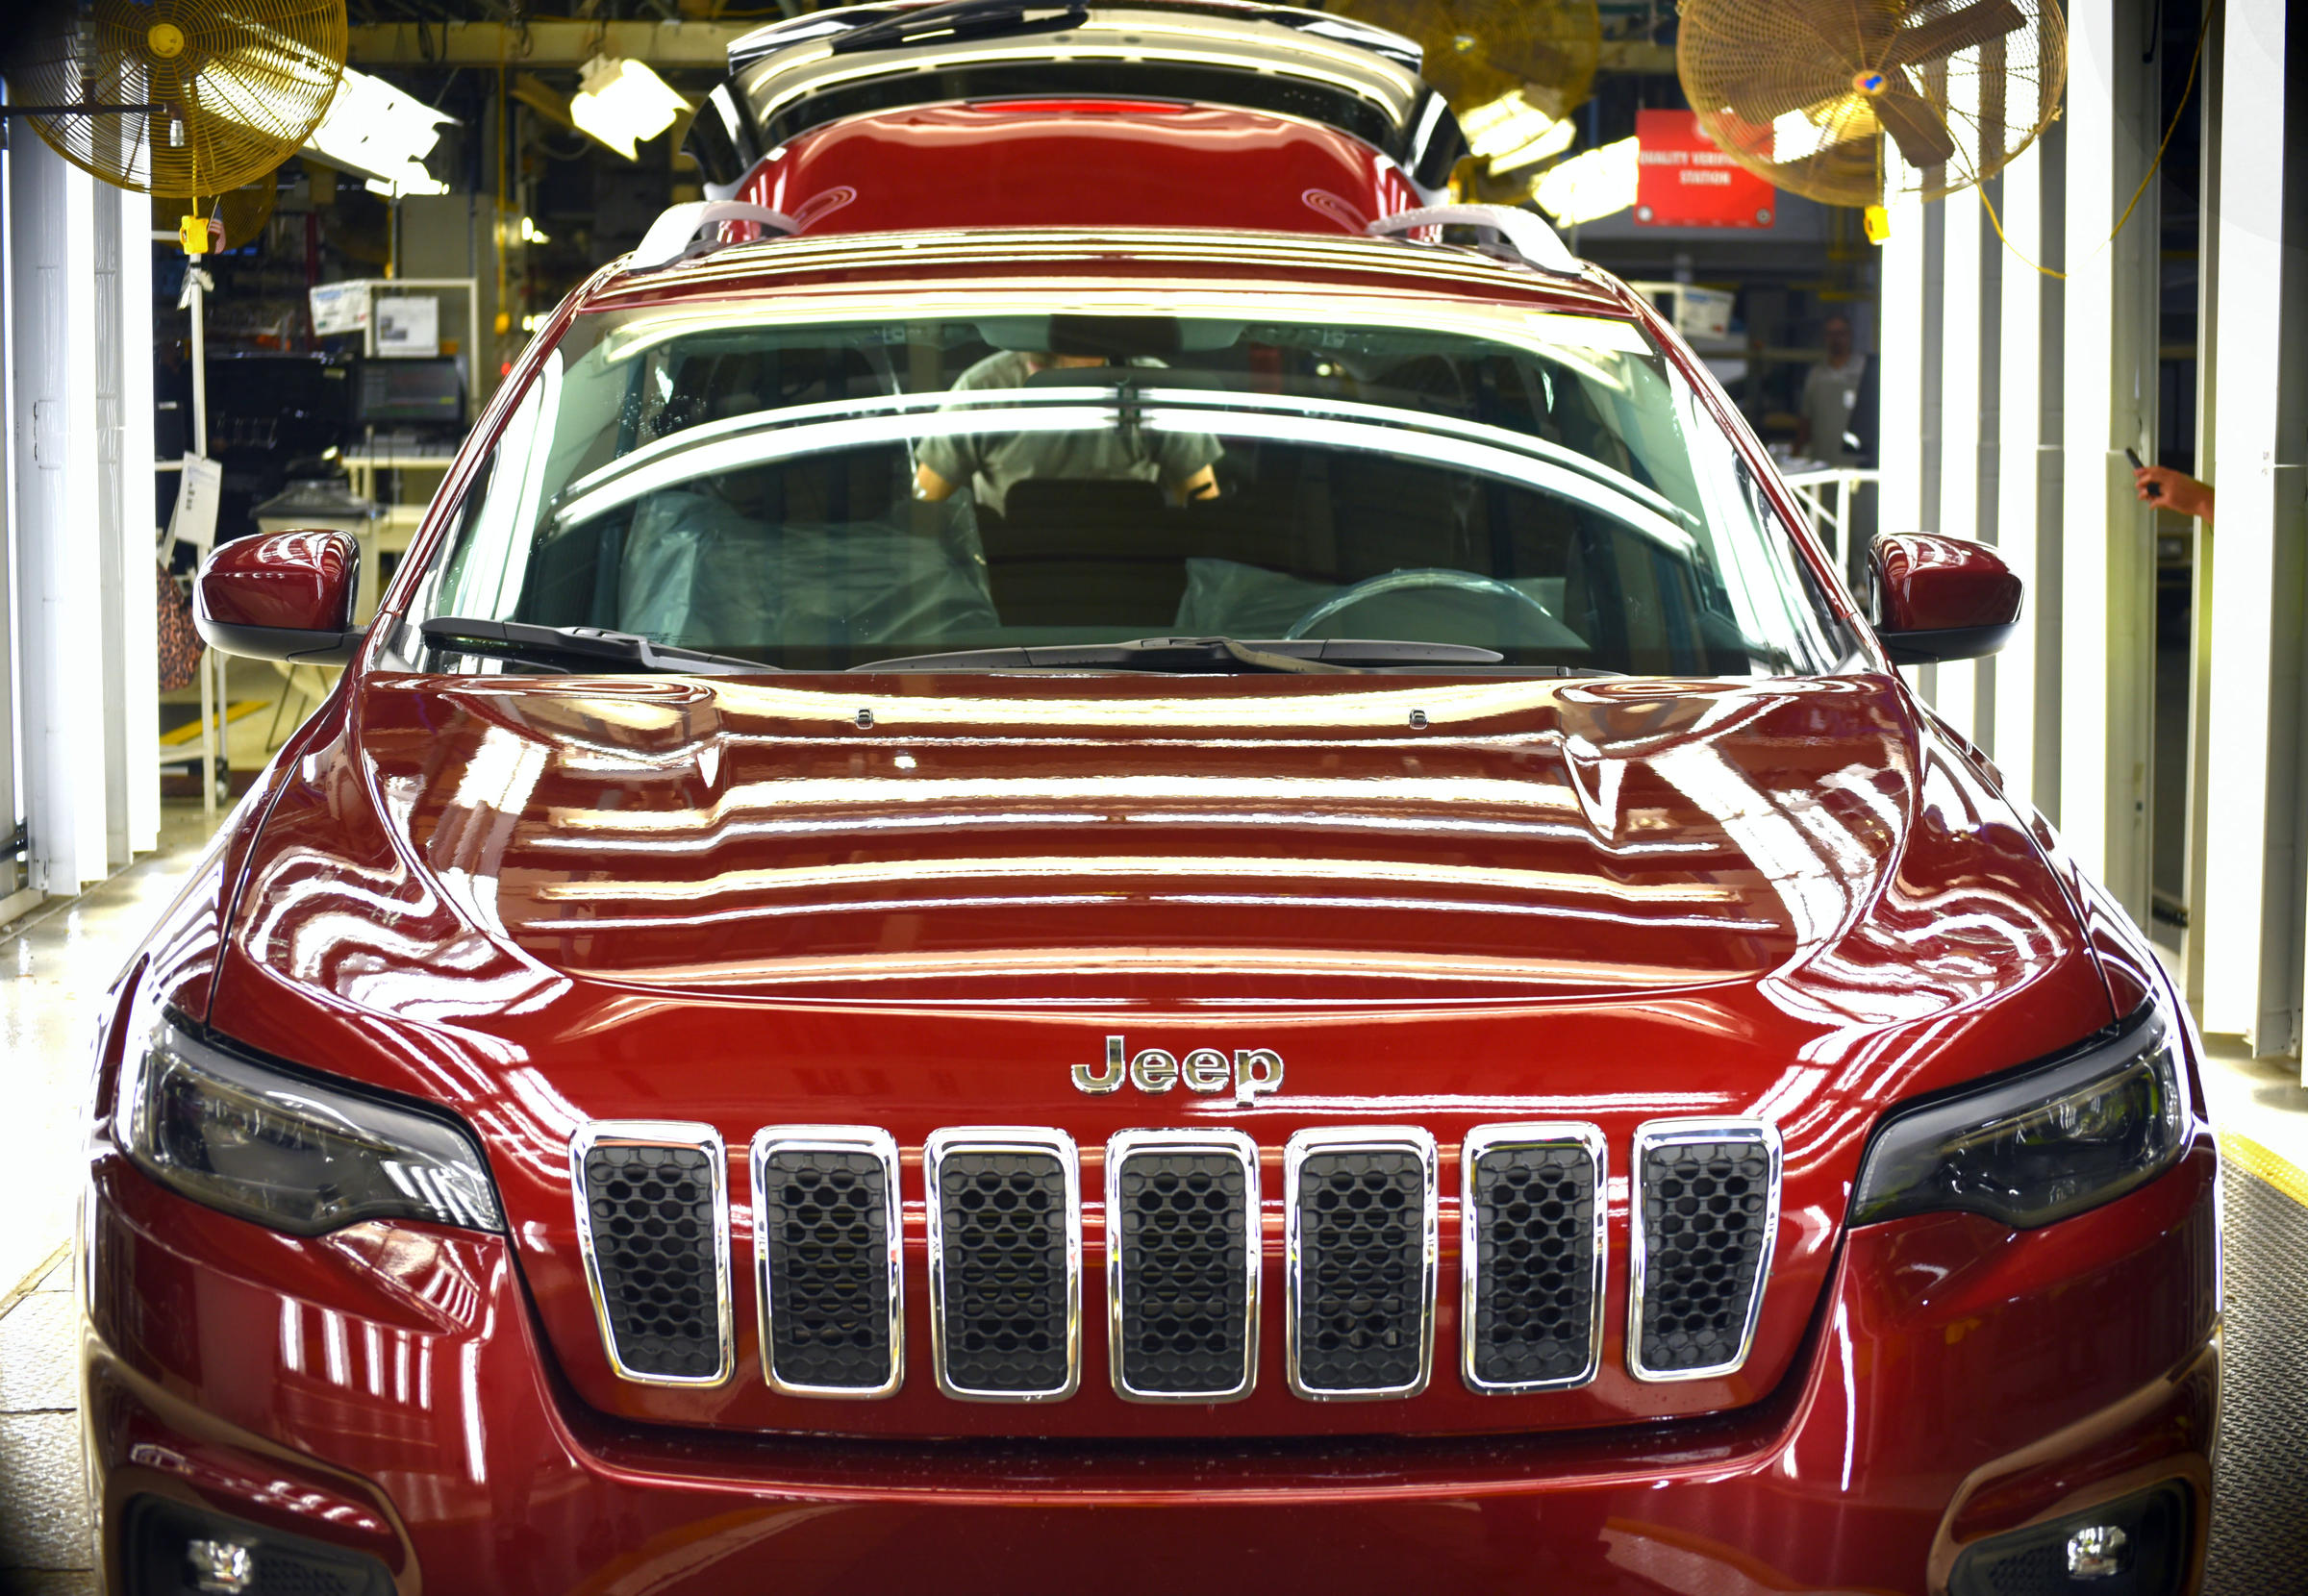 List Of American Cars >> Car Made In Belvidere Tops List Of Most American Cars